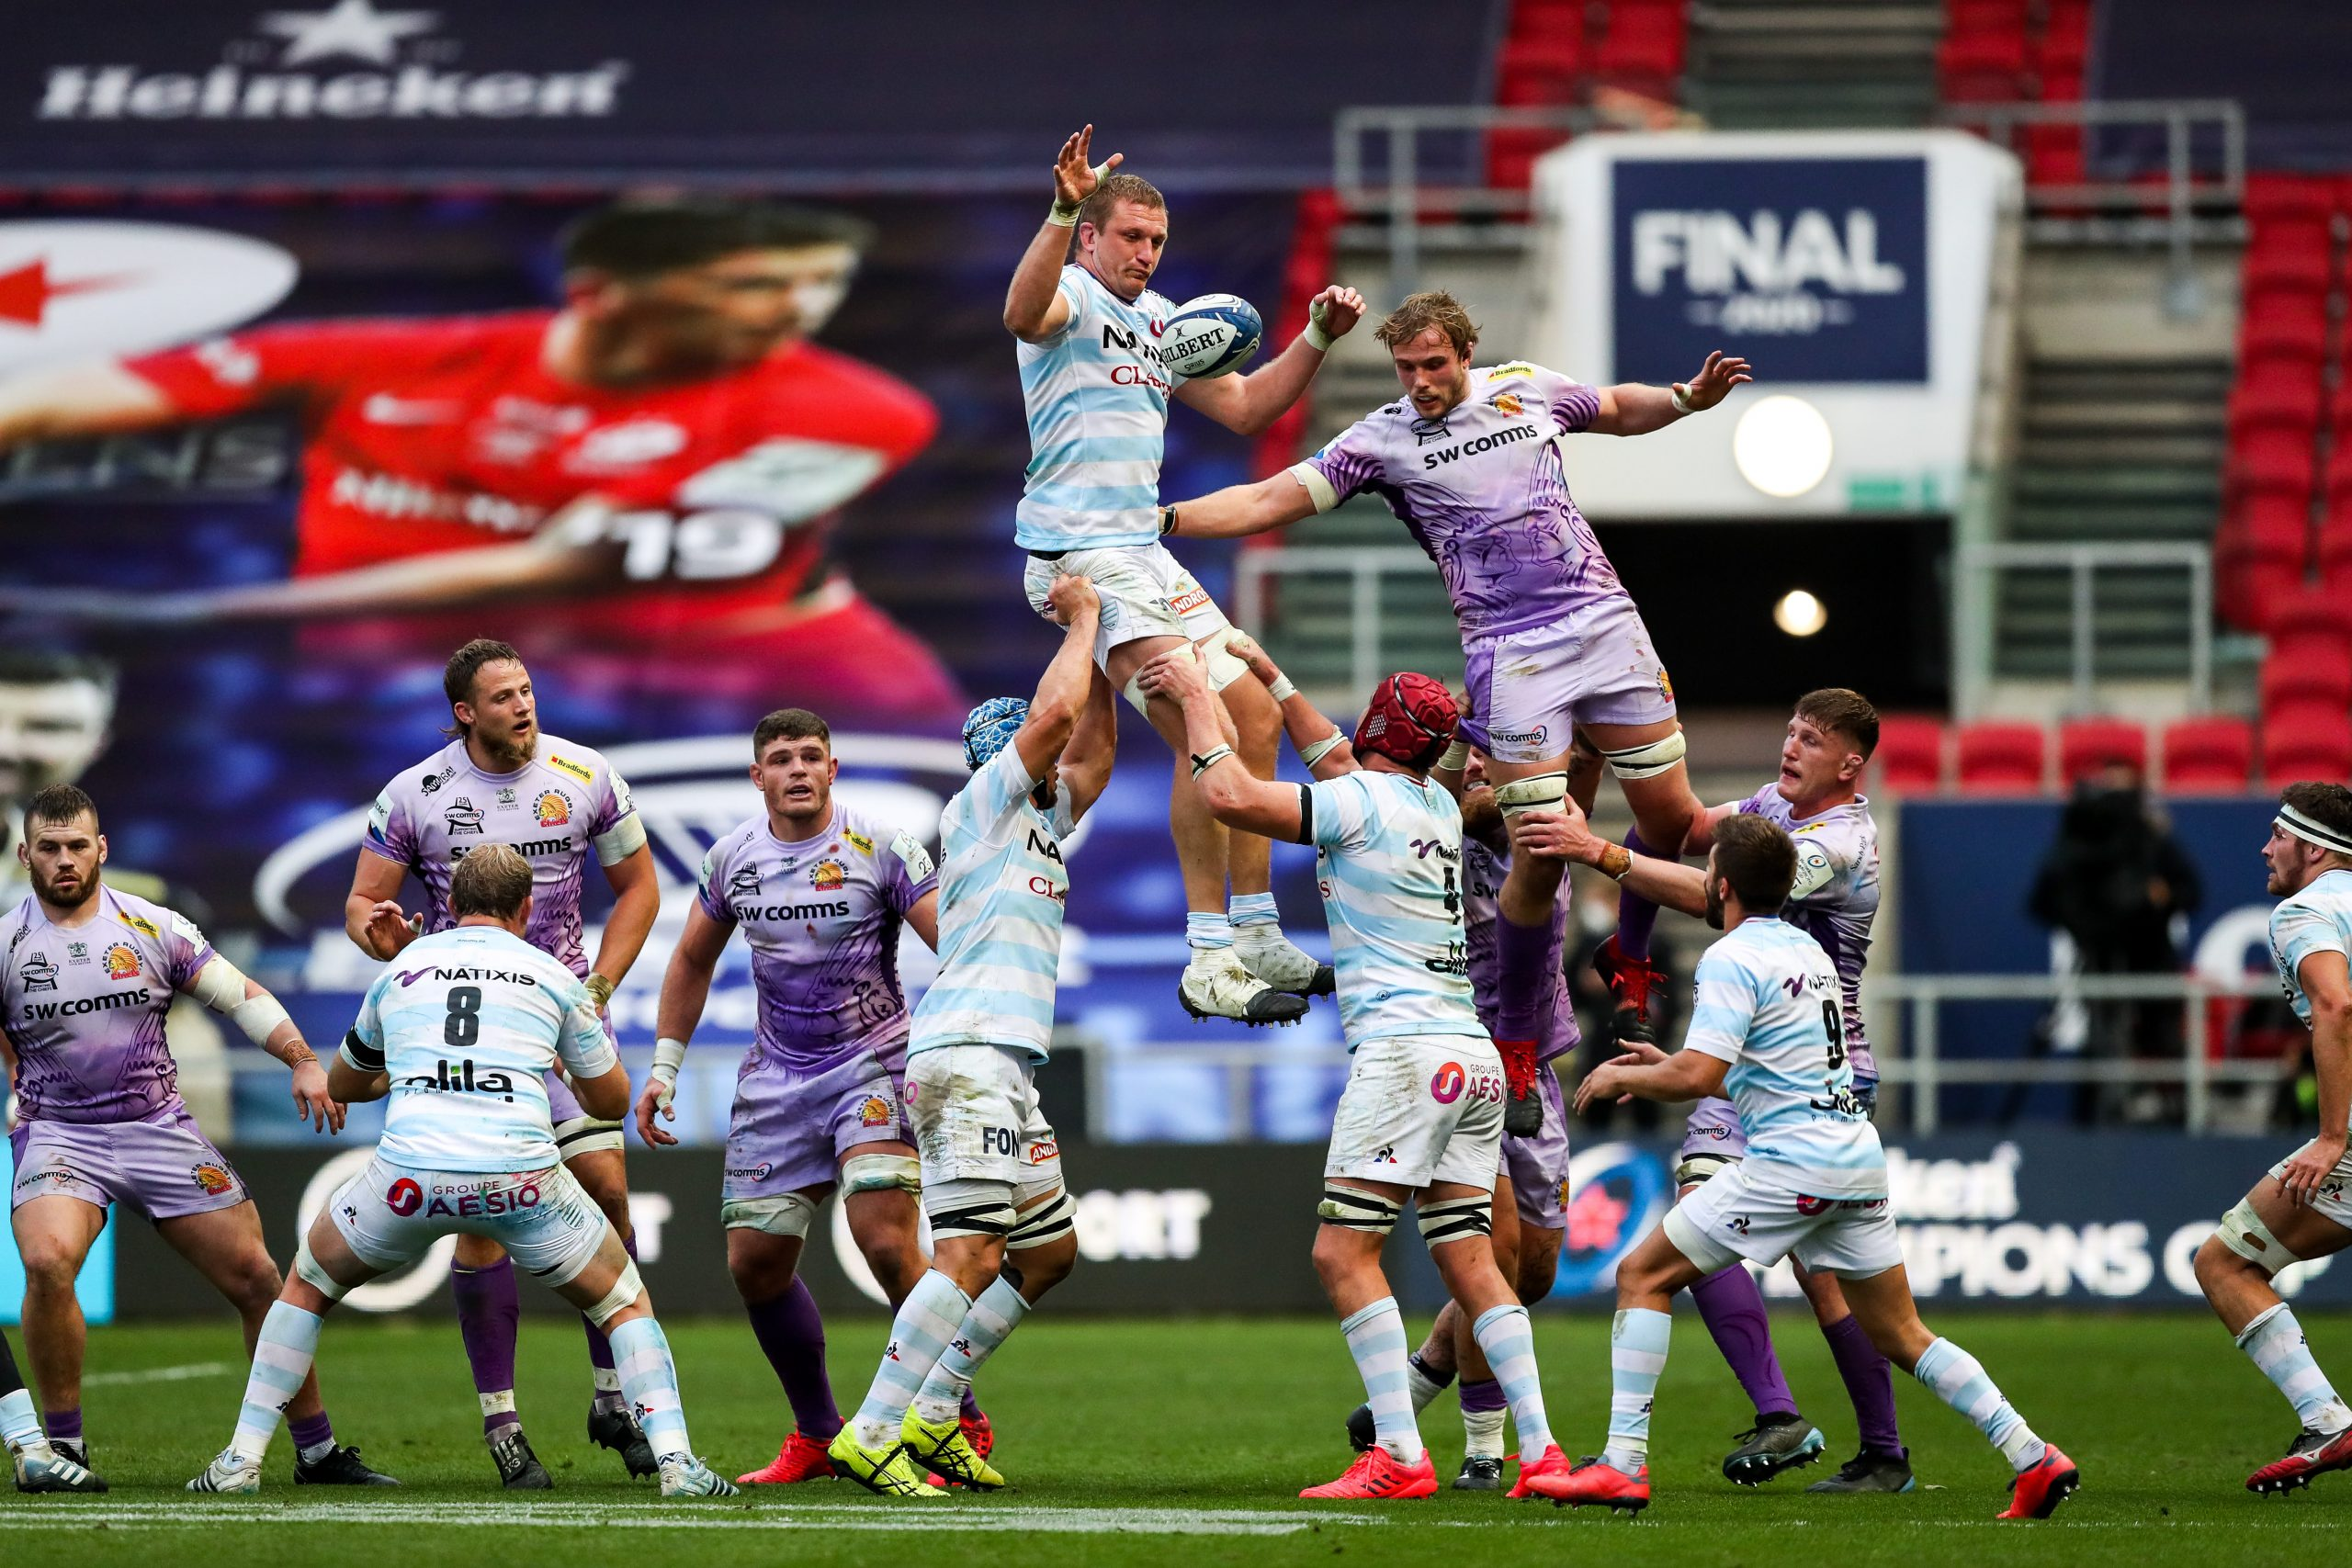 Racing's Dominic Bird wins a line-out. Picture: ©INPHO/Rogan Thomson